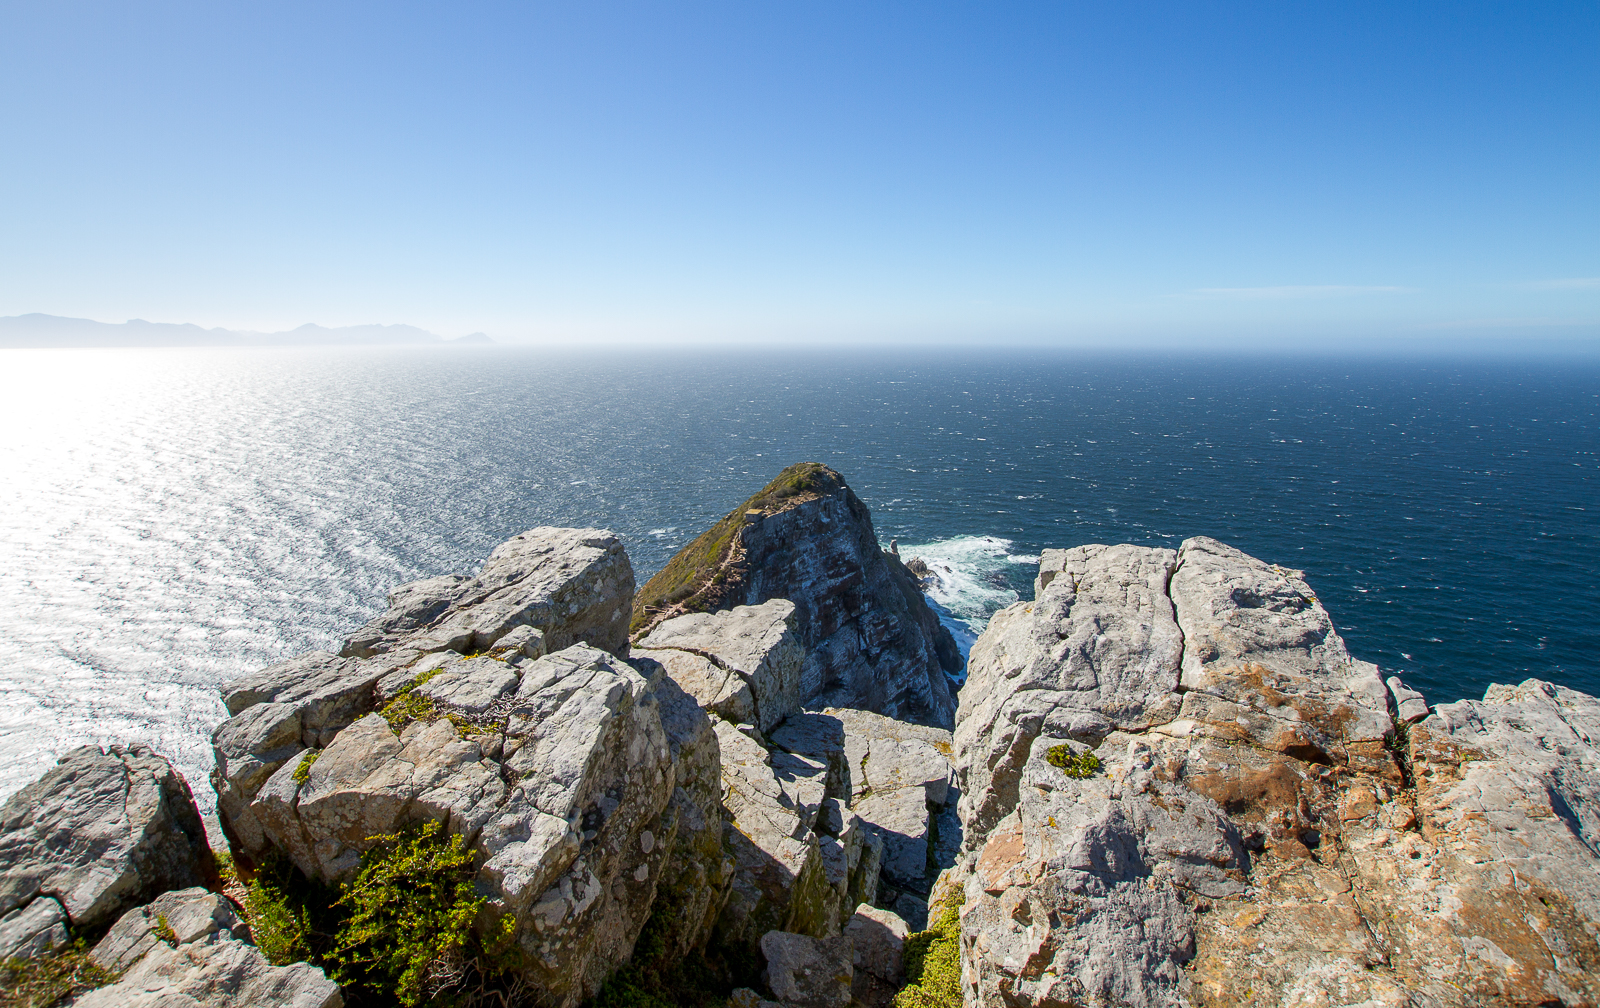 La Pointe du Cap, Cape of Good Hope, Afrique du Sud - Partis pour